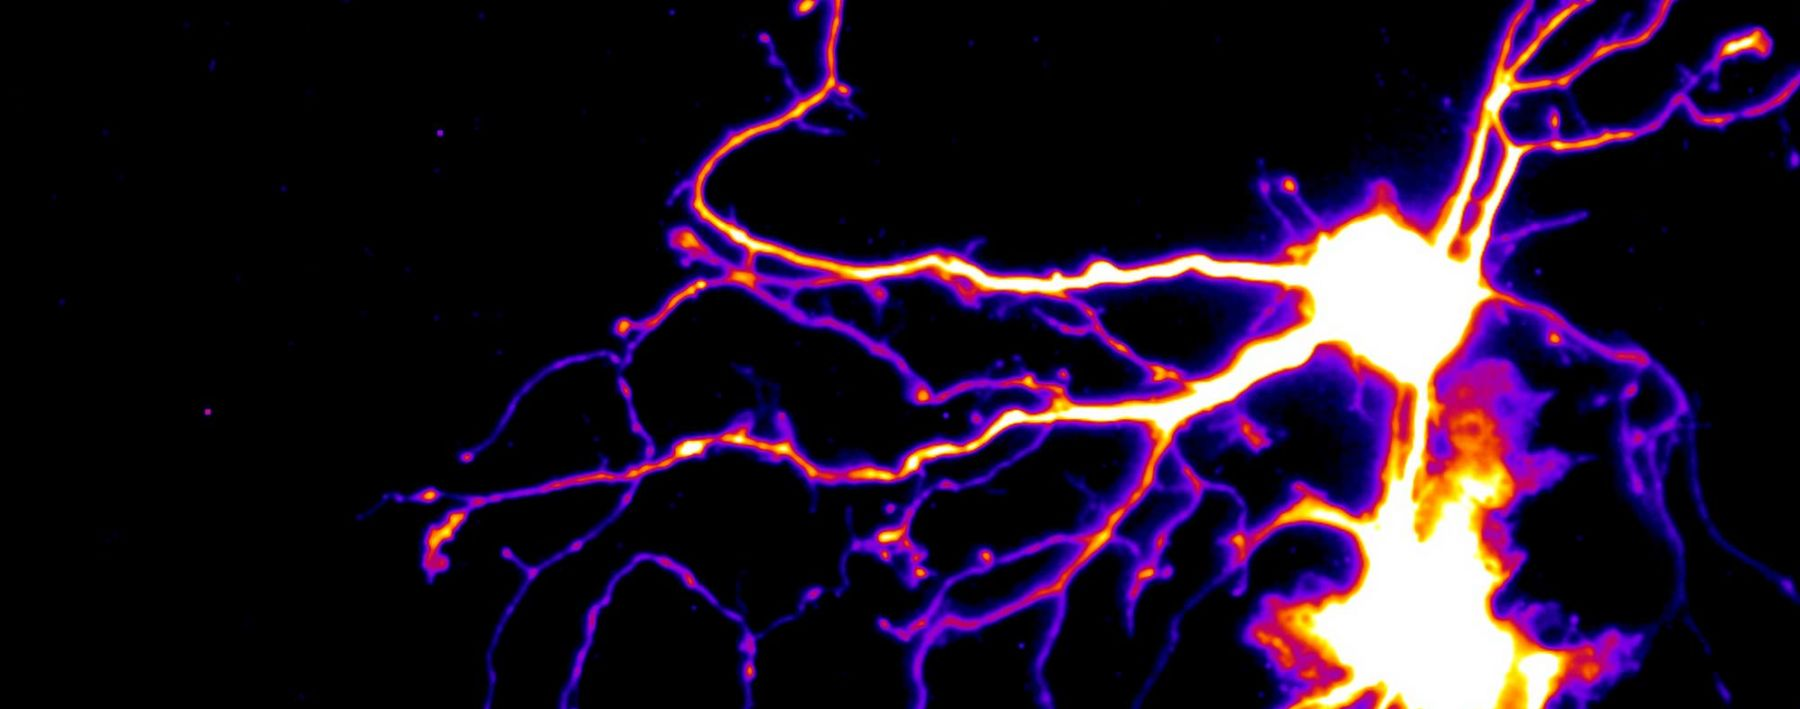 A neuron and glia expressing a photo-convertible protein, Dendra2.